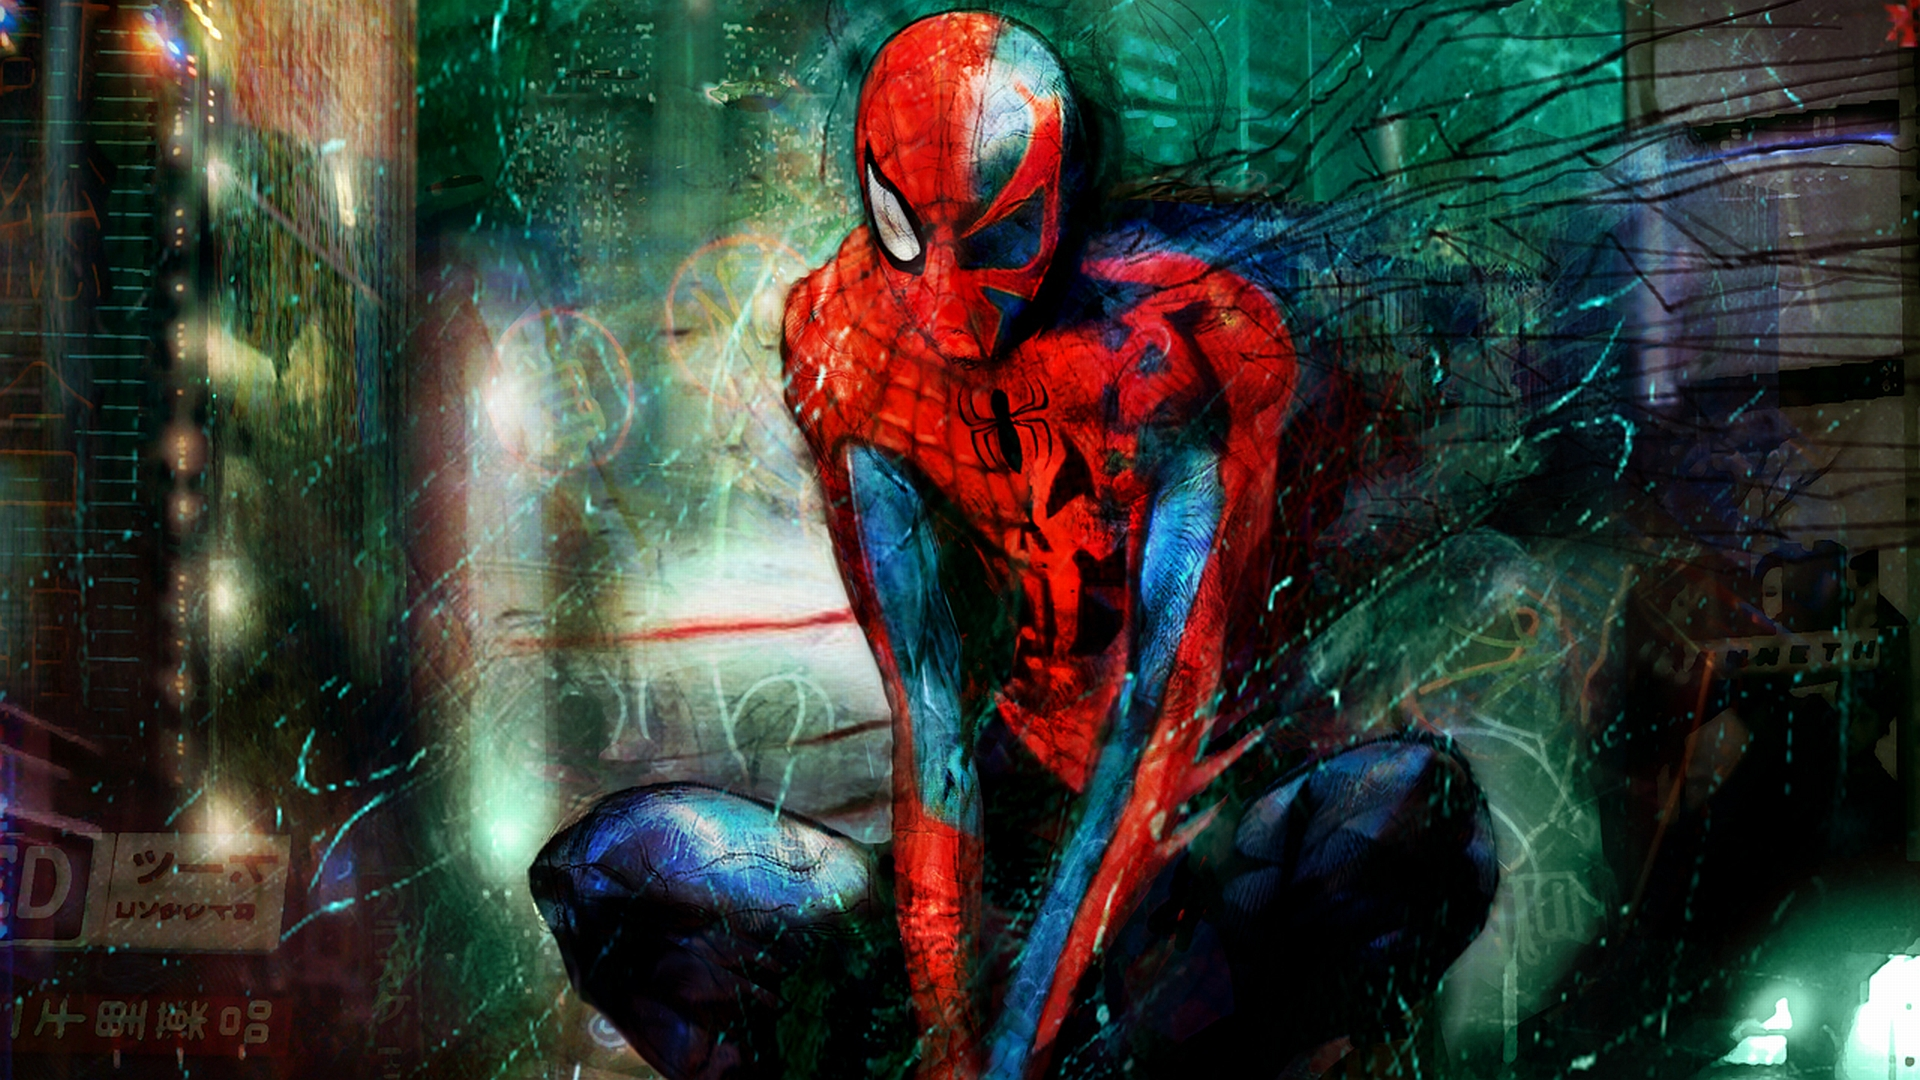 Spiderman Live Wallpaper Hd: Wallpaper.wiki-Spiderman-Wallpapers-HD-1-PIC-WPD00858